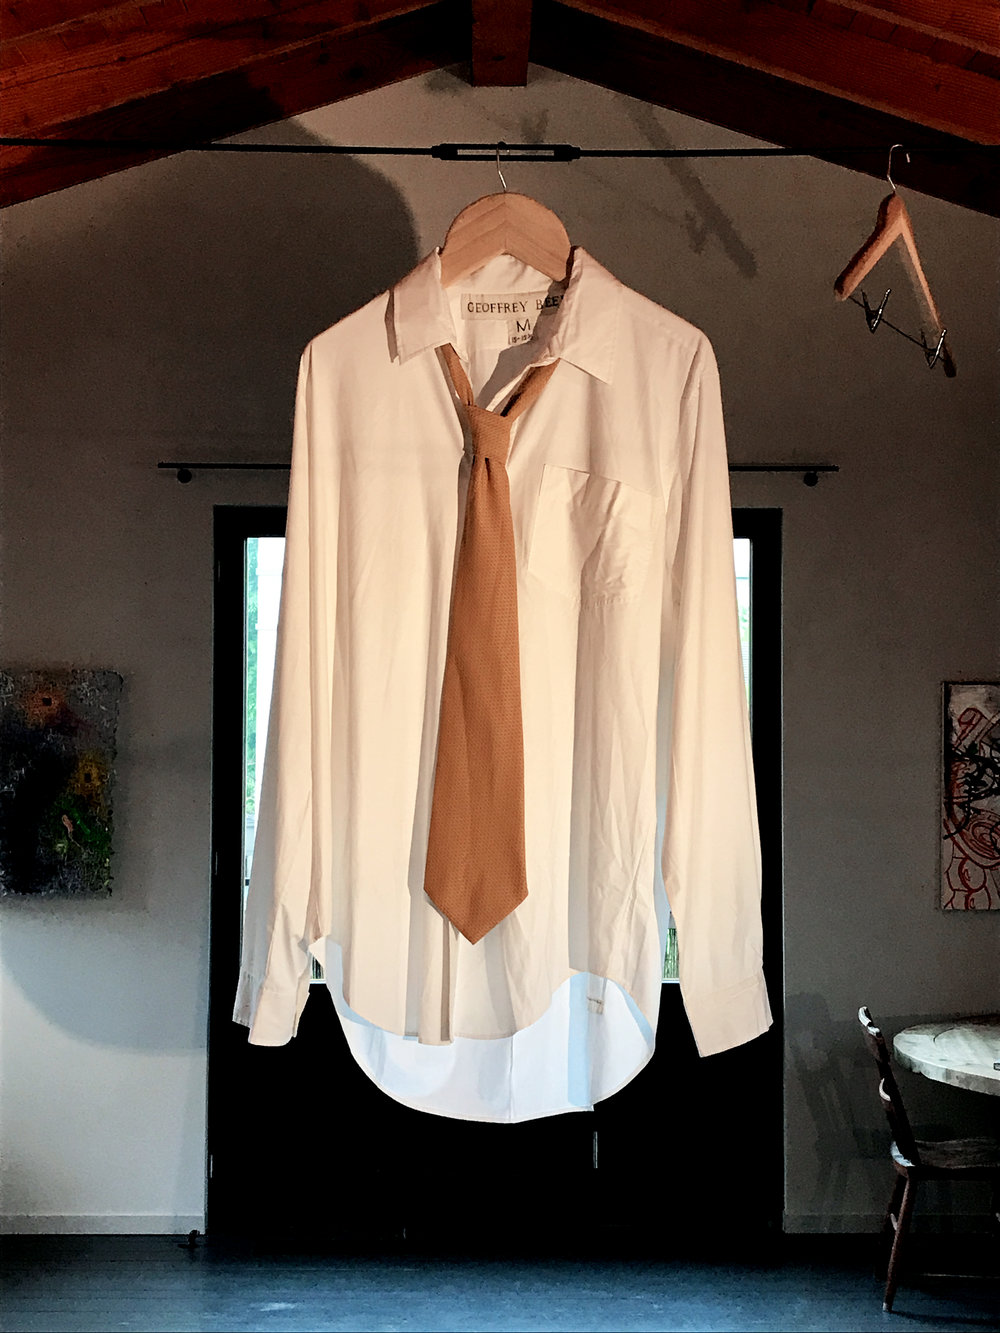 Sidney Russell. Man's White Formal Shirt With Tie, 2016.